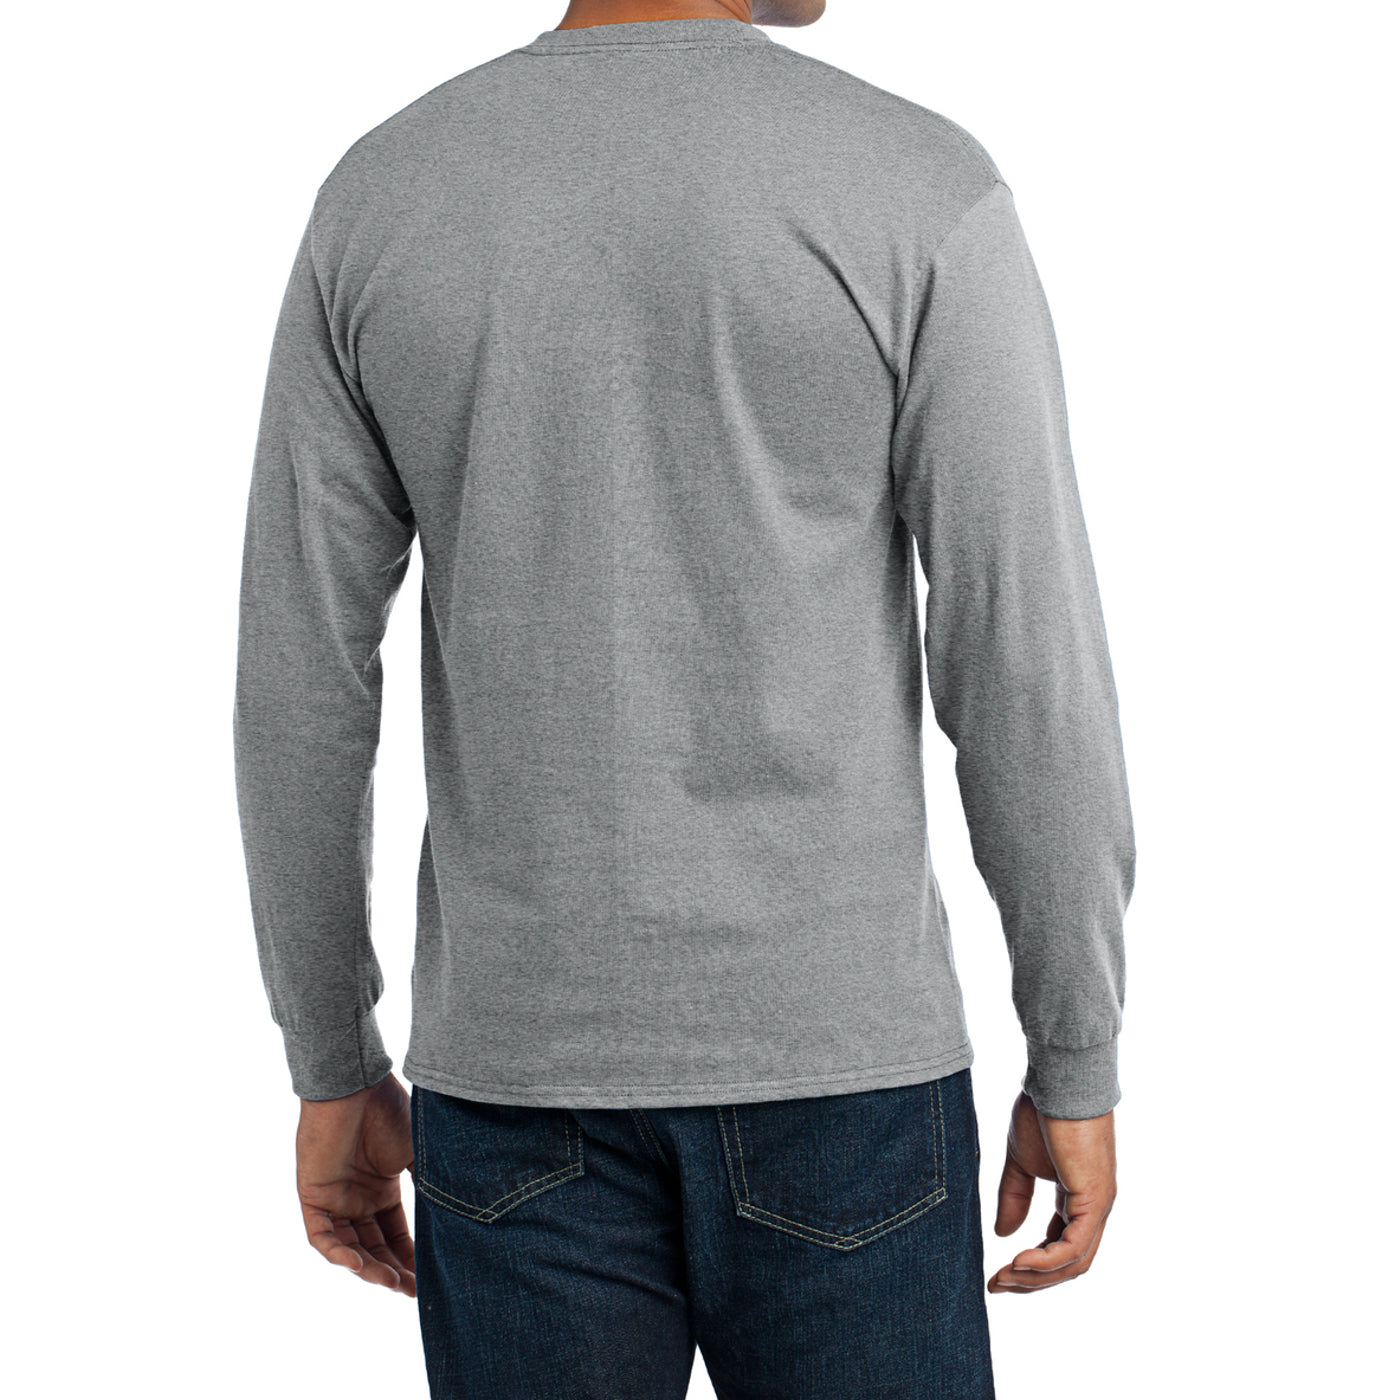 Men's Long Sleeve Core Blend Tee - Athletic Heather – Back